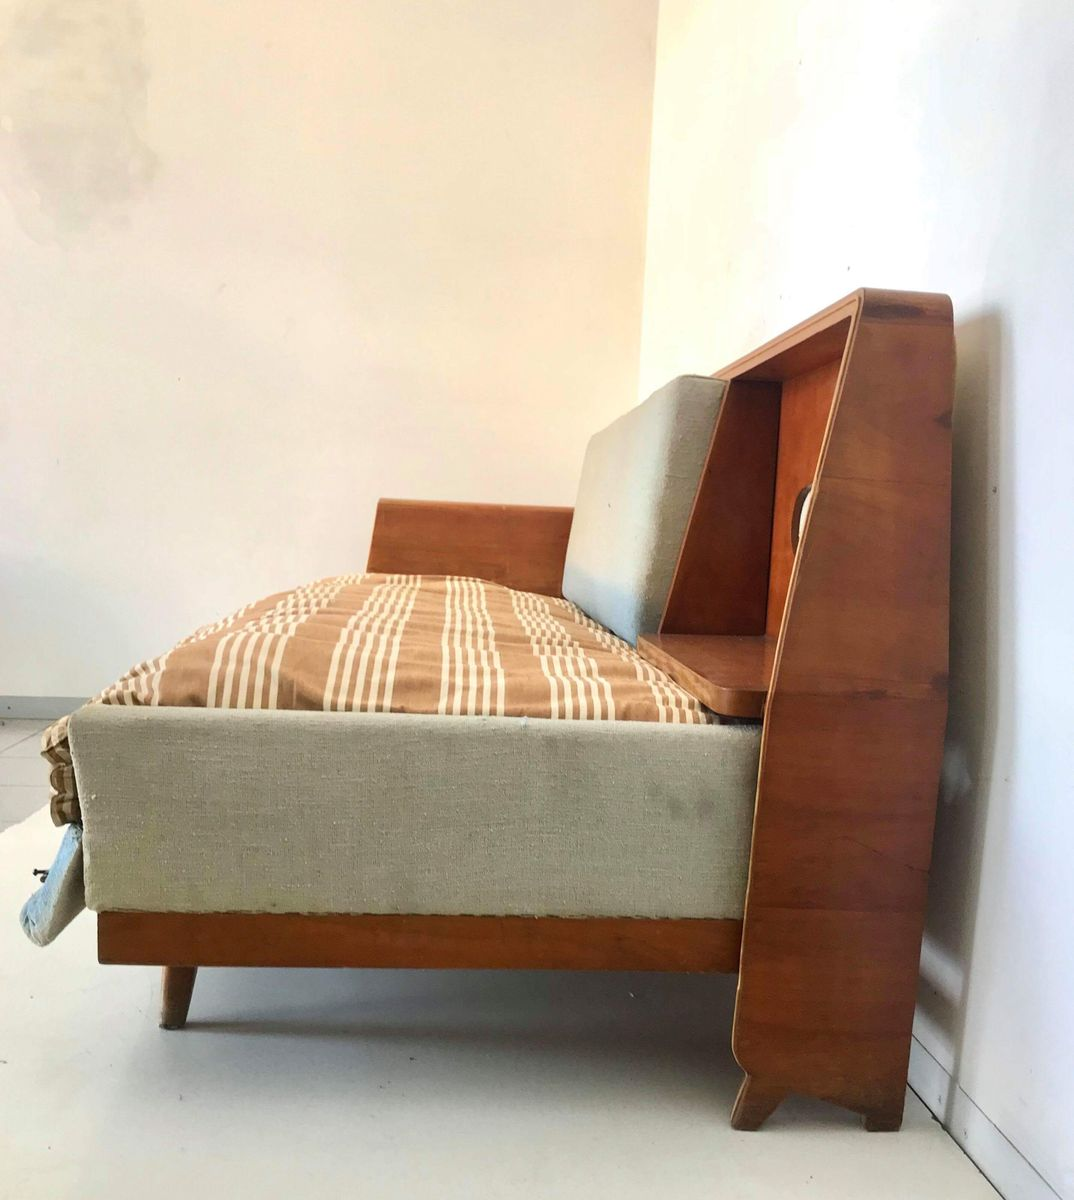 Sofa Bed With Storage Compartment, 1960s For Sale At Pamono